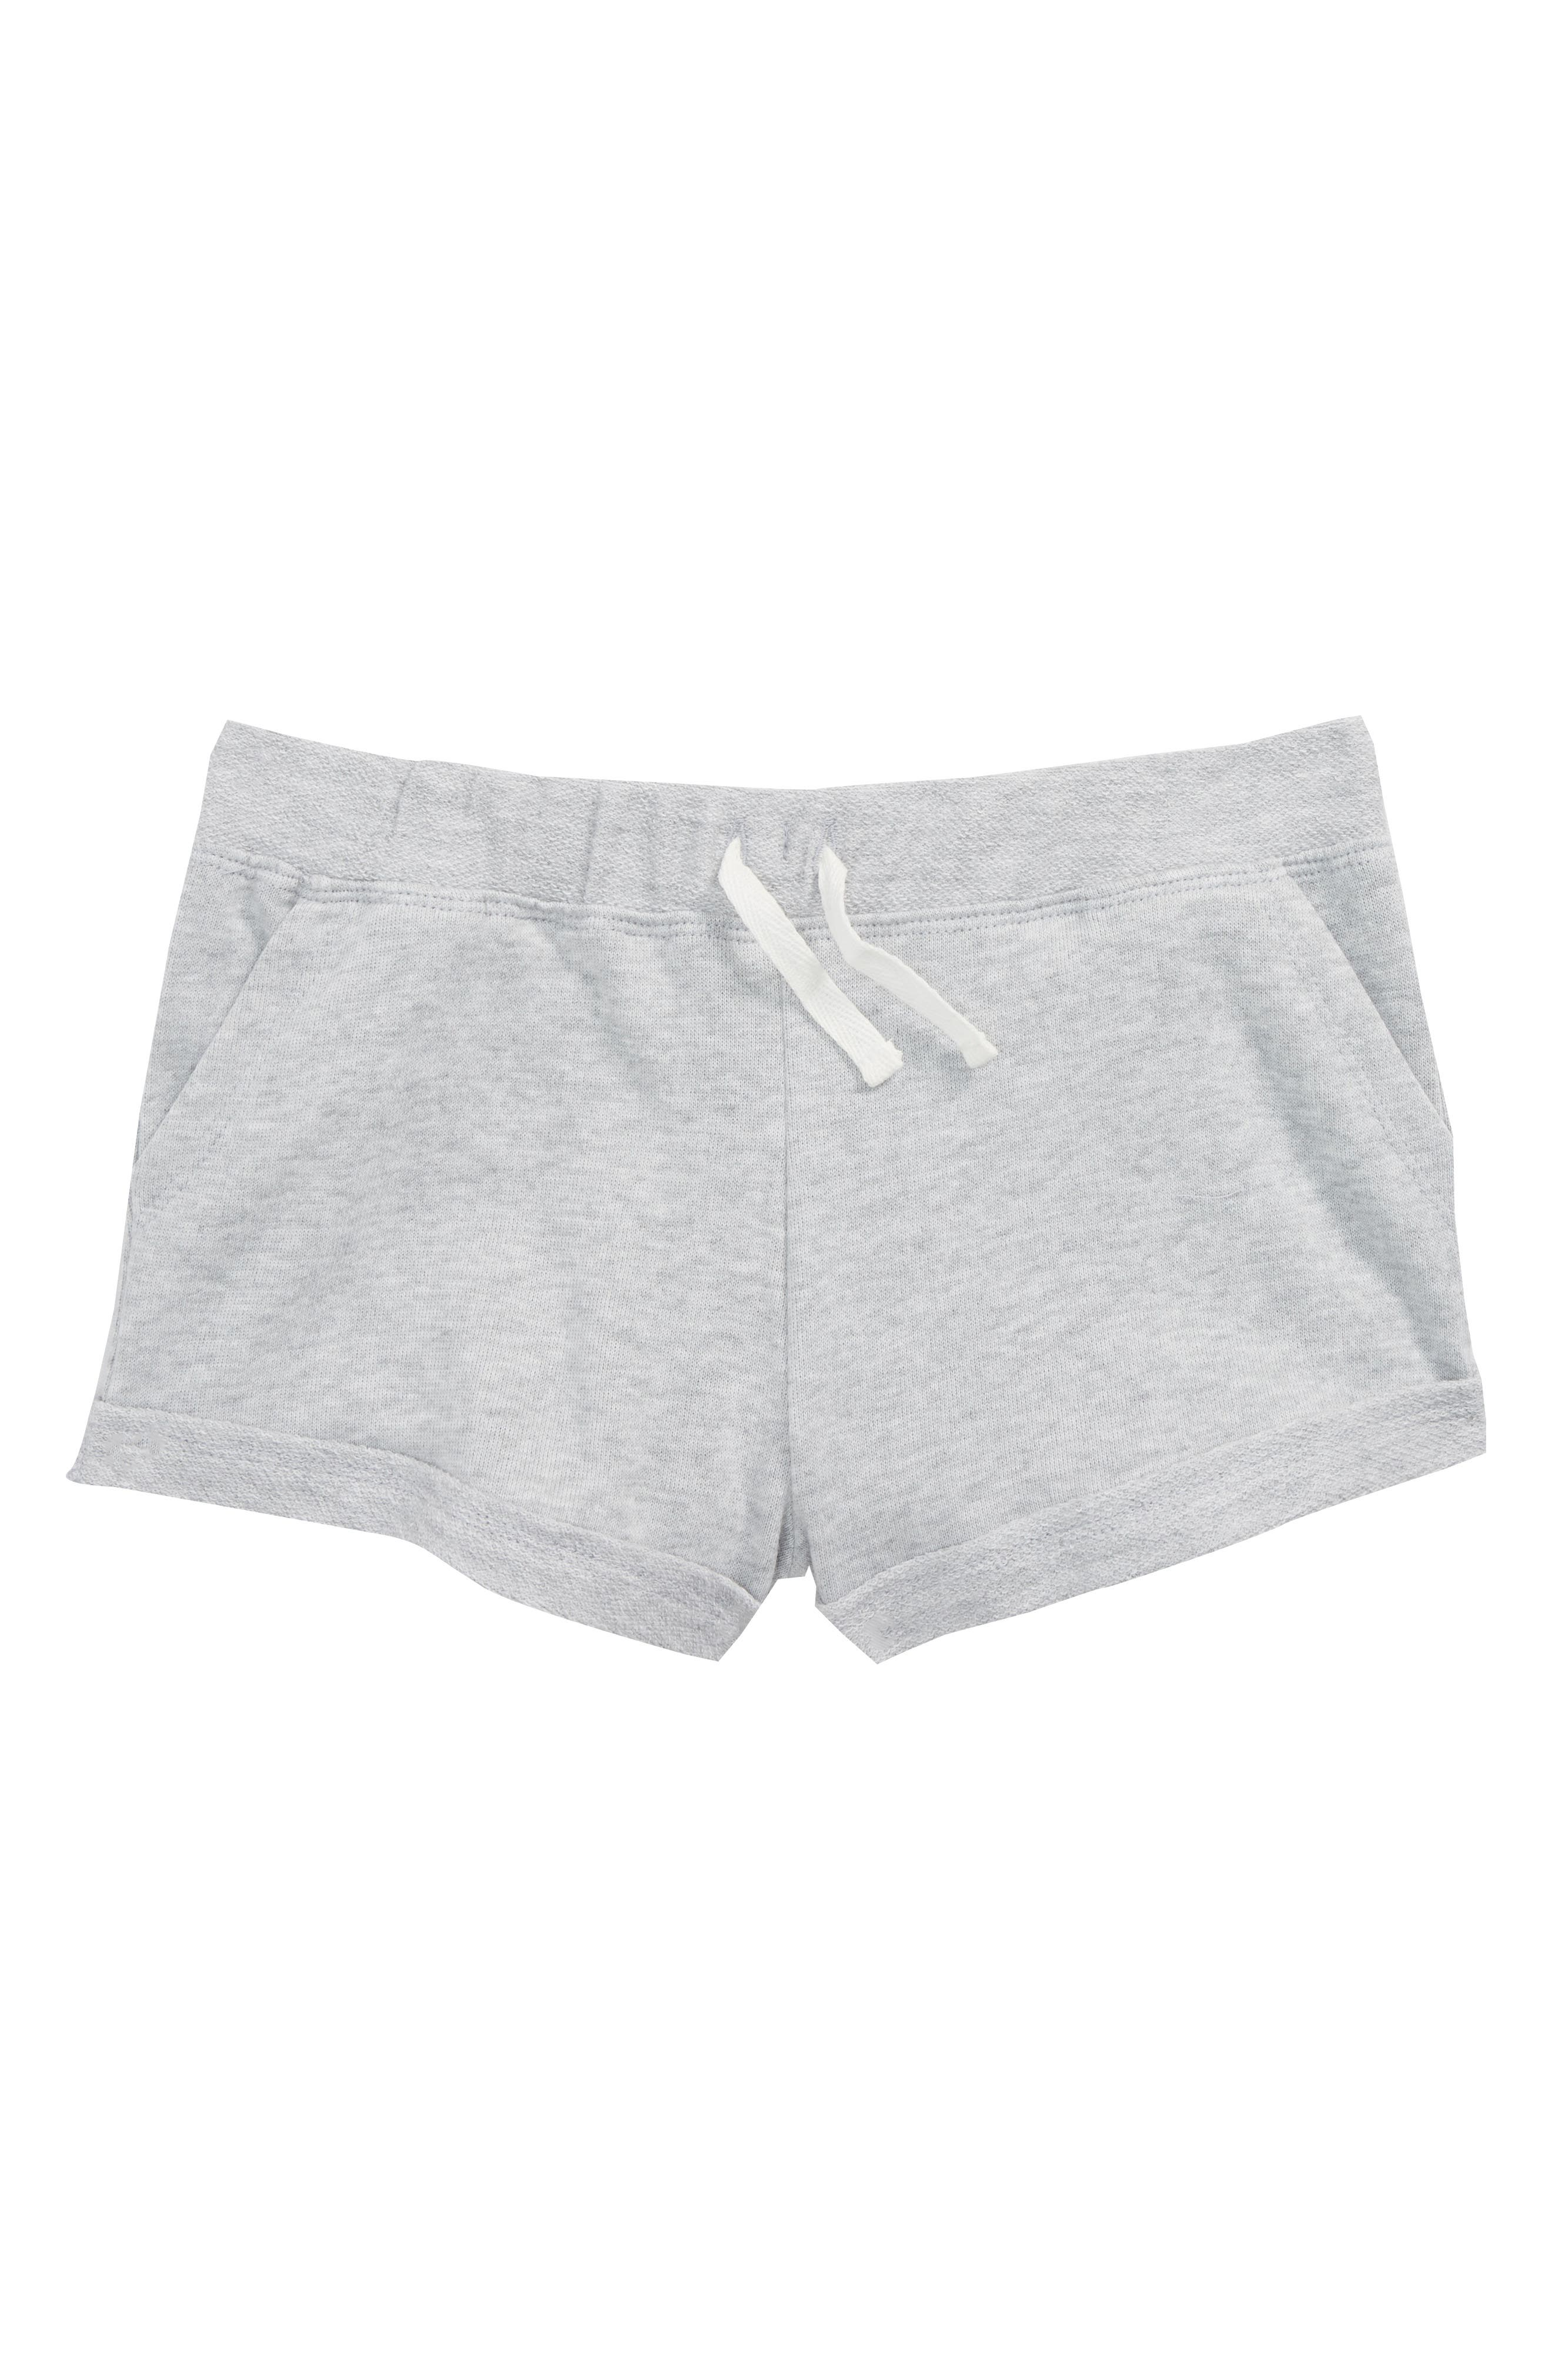 Cuff French Terry Shorts,                         Main,                         color, Ice Grey Heather